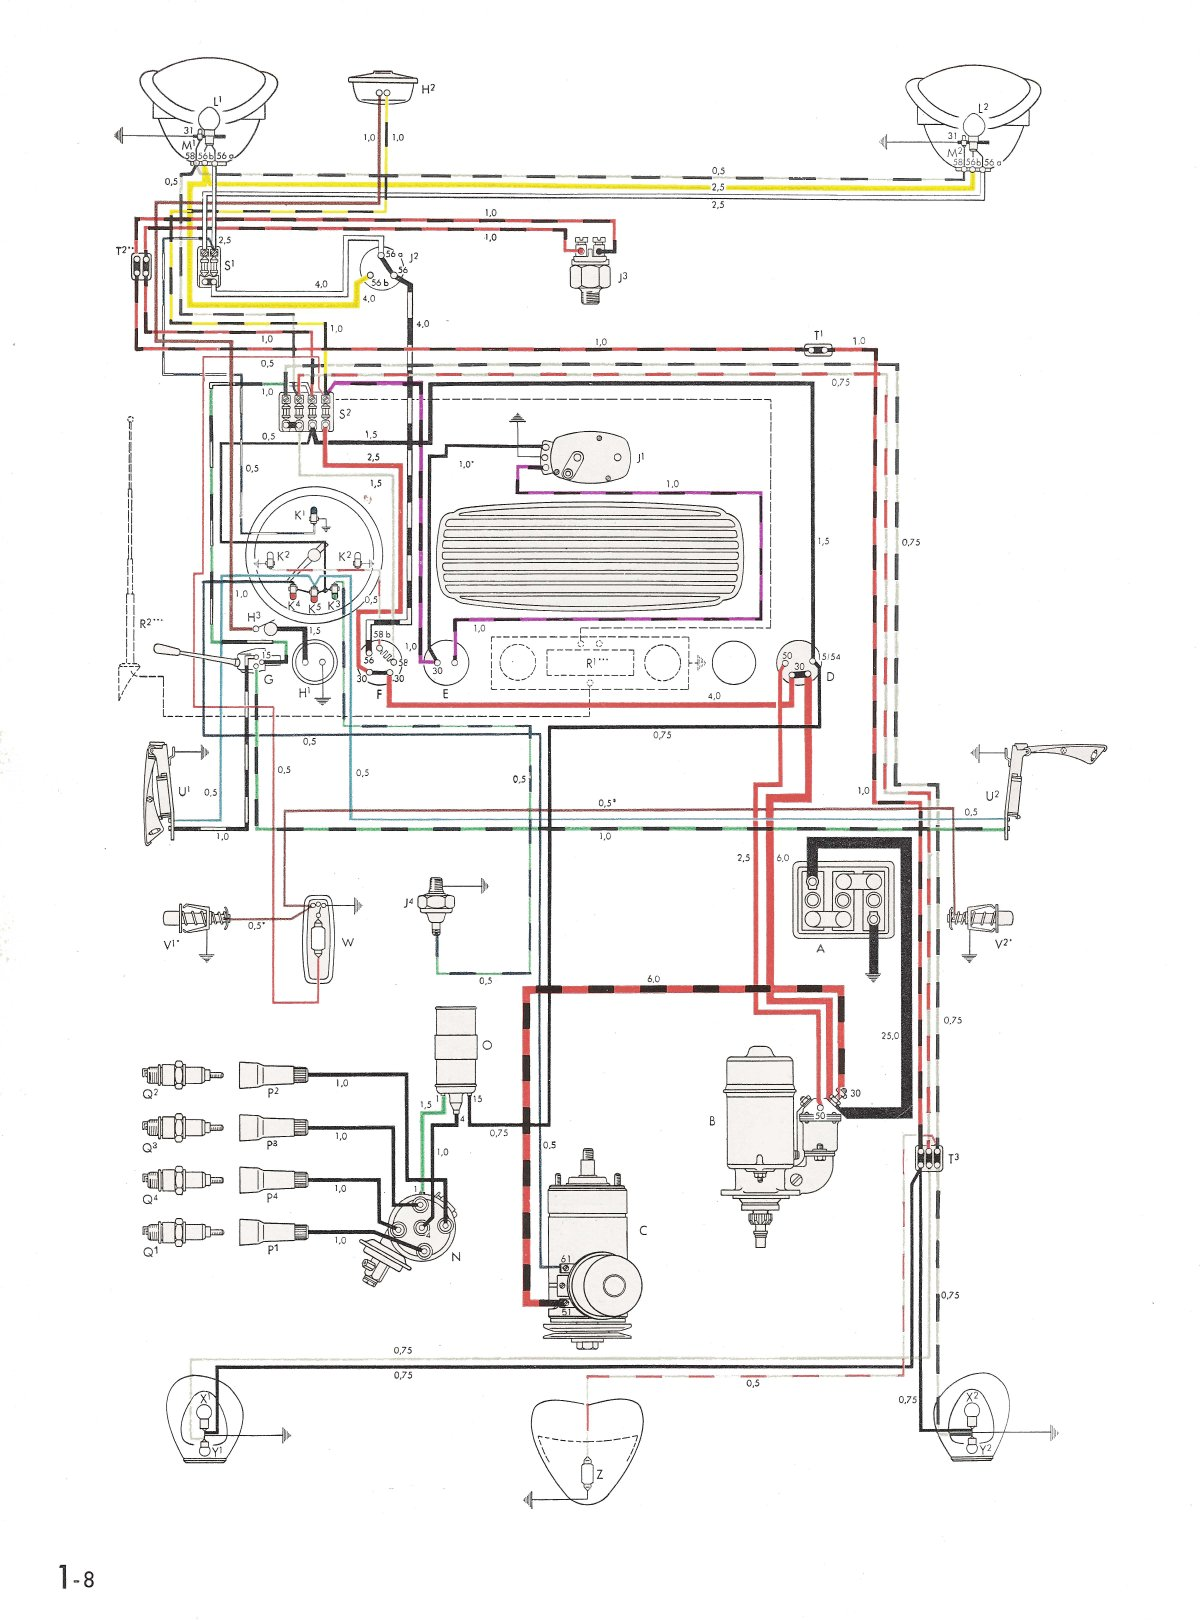 68 vw bug fuse diagram wiring diagram